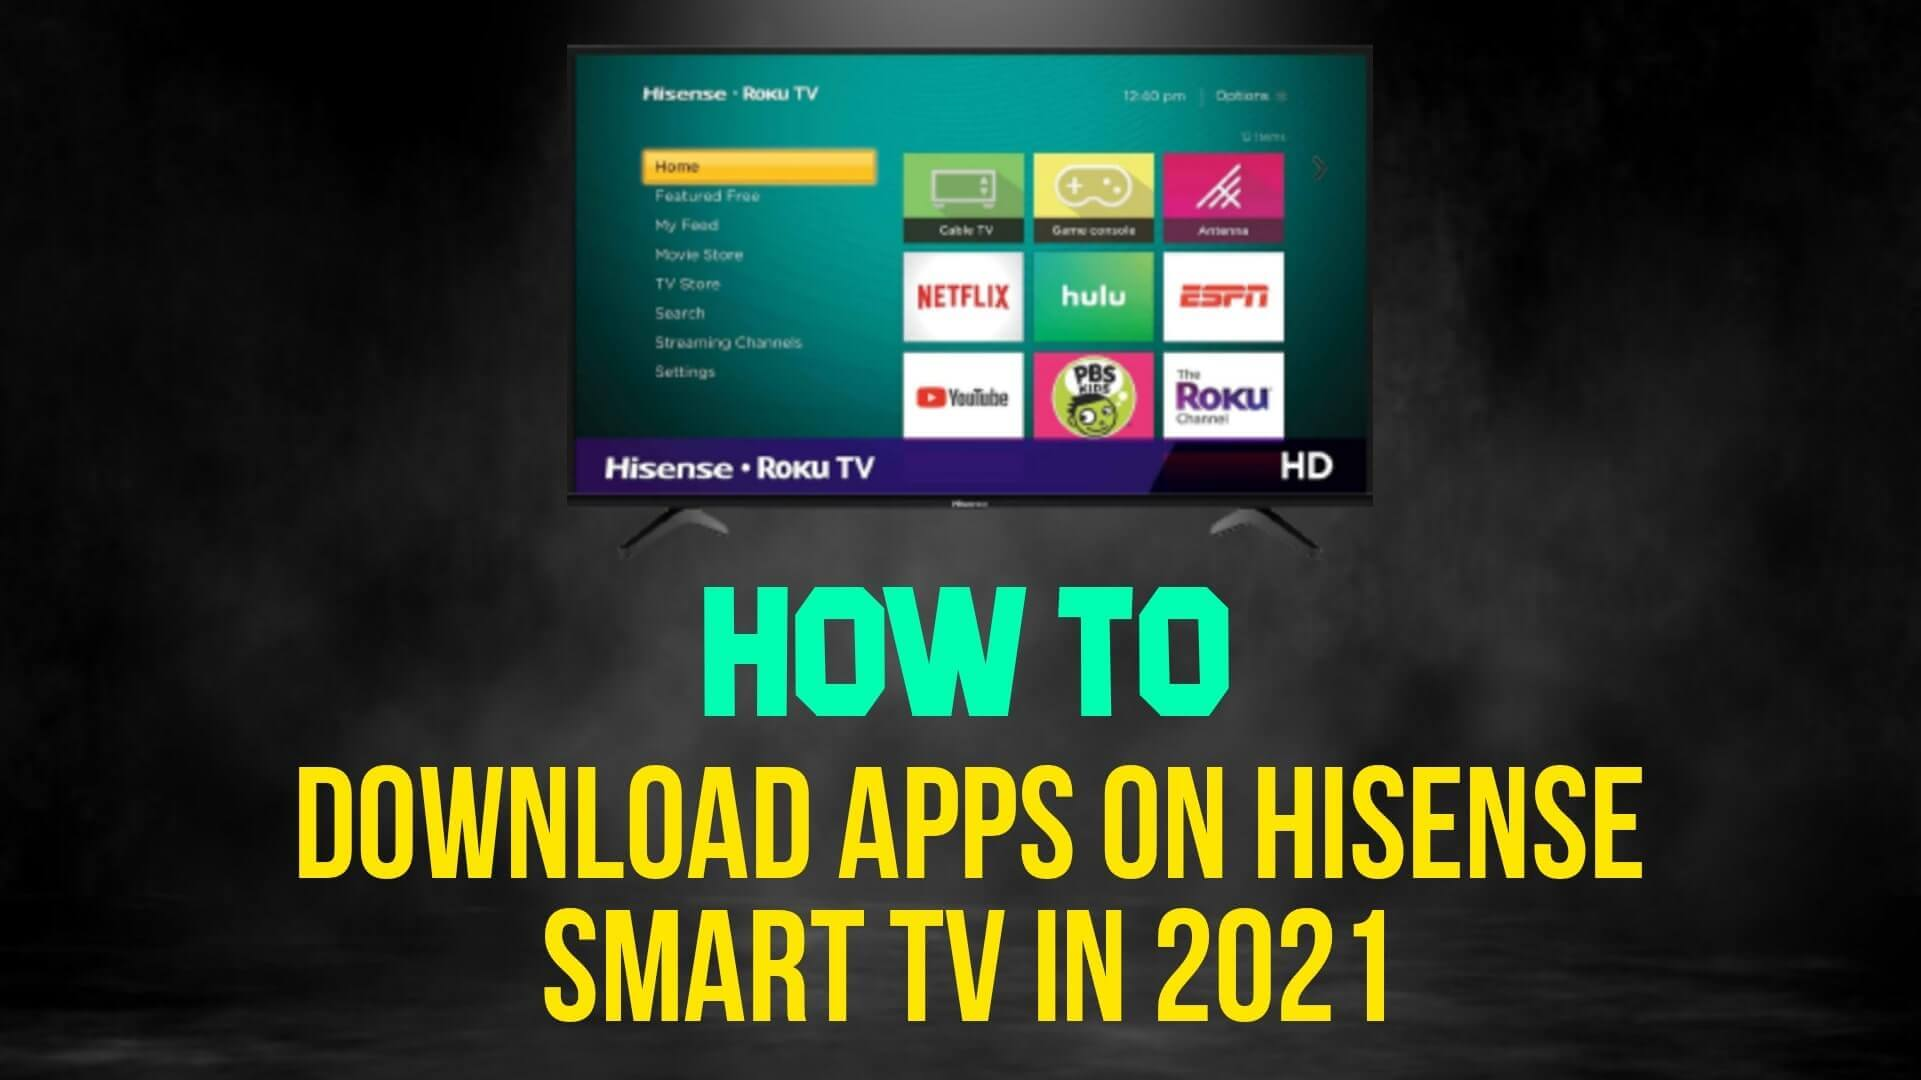 How to download apps on Hisense smart tv